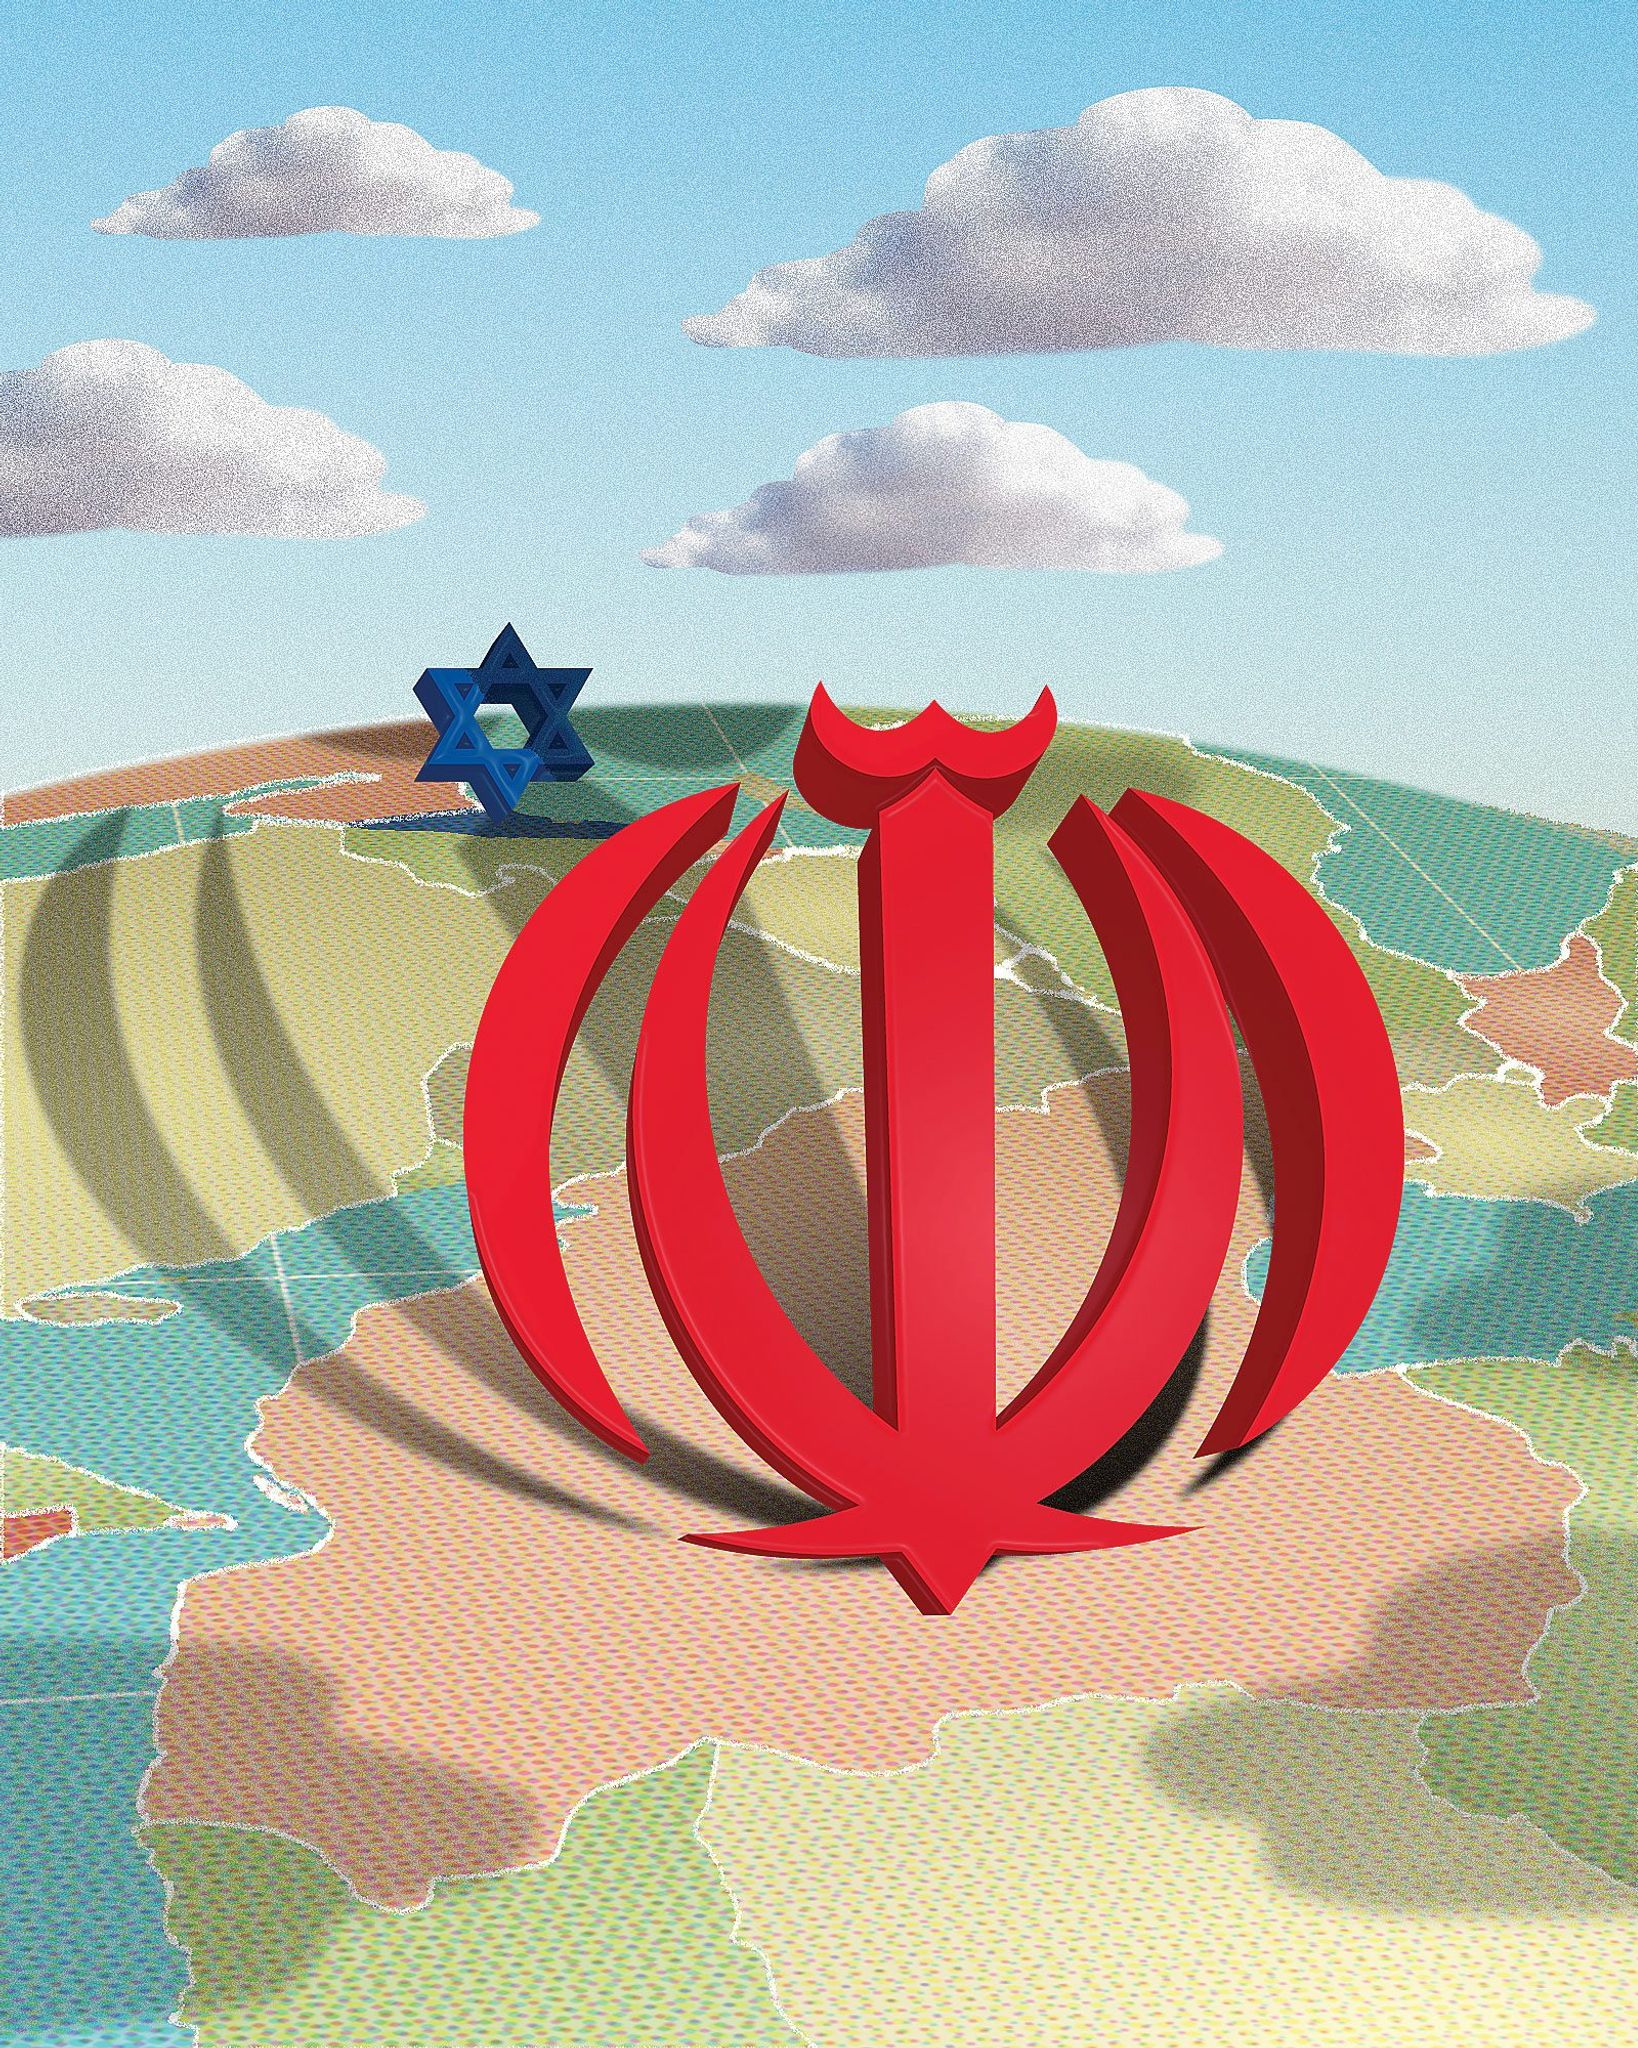 Curbing Iran's ambitions in the Middle East